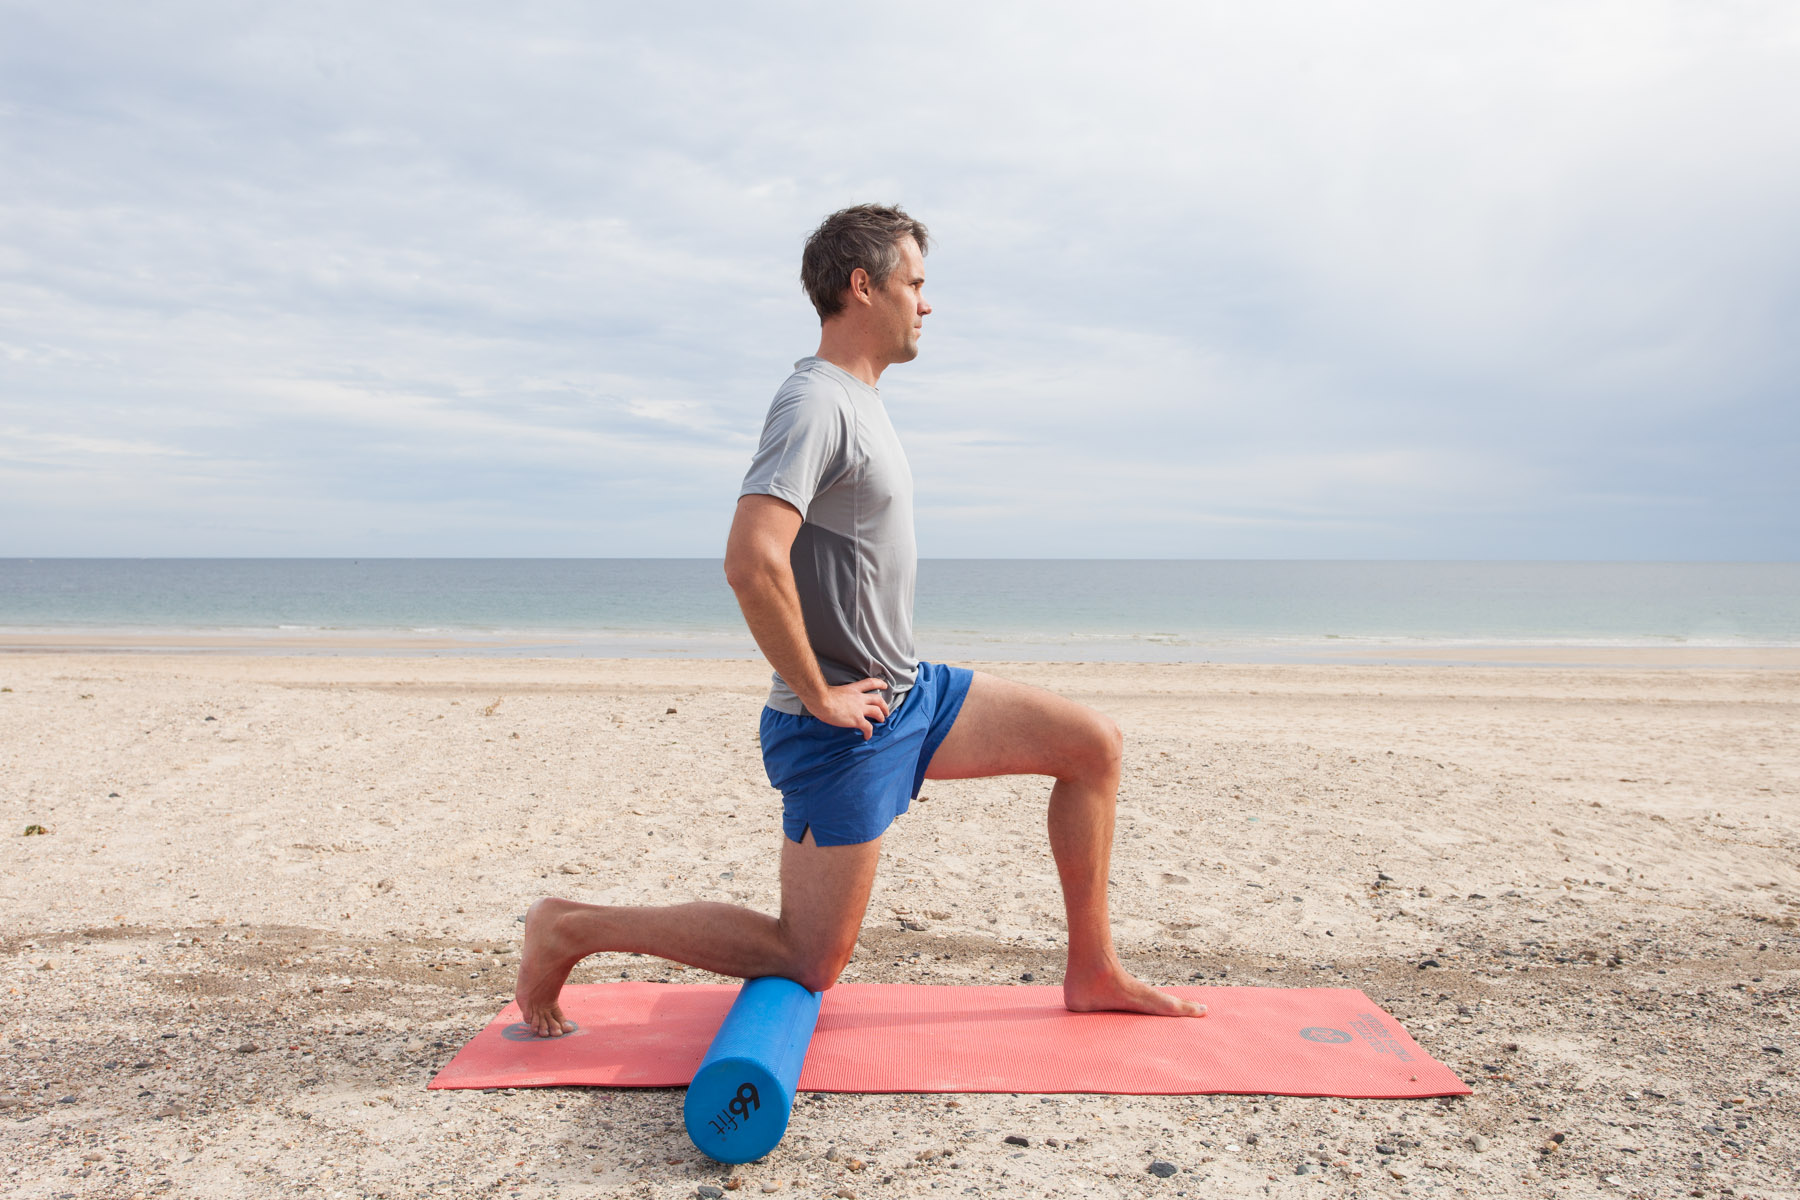 HIP FLEXOR STRETCH  Feel the stretch in the front of your hip as you tuck the pelvis under gently